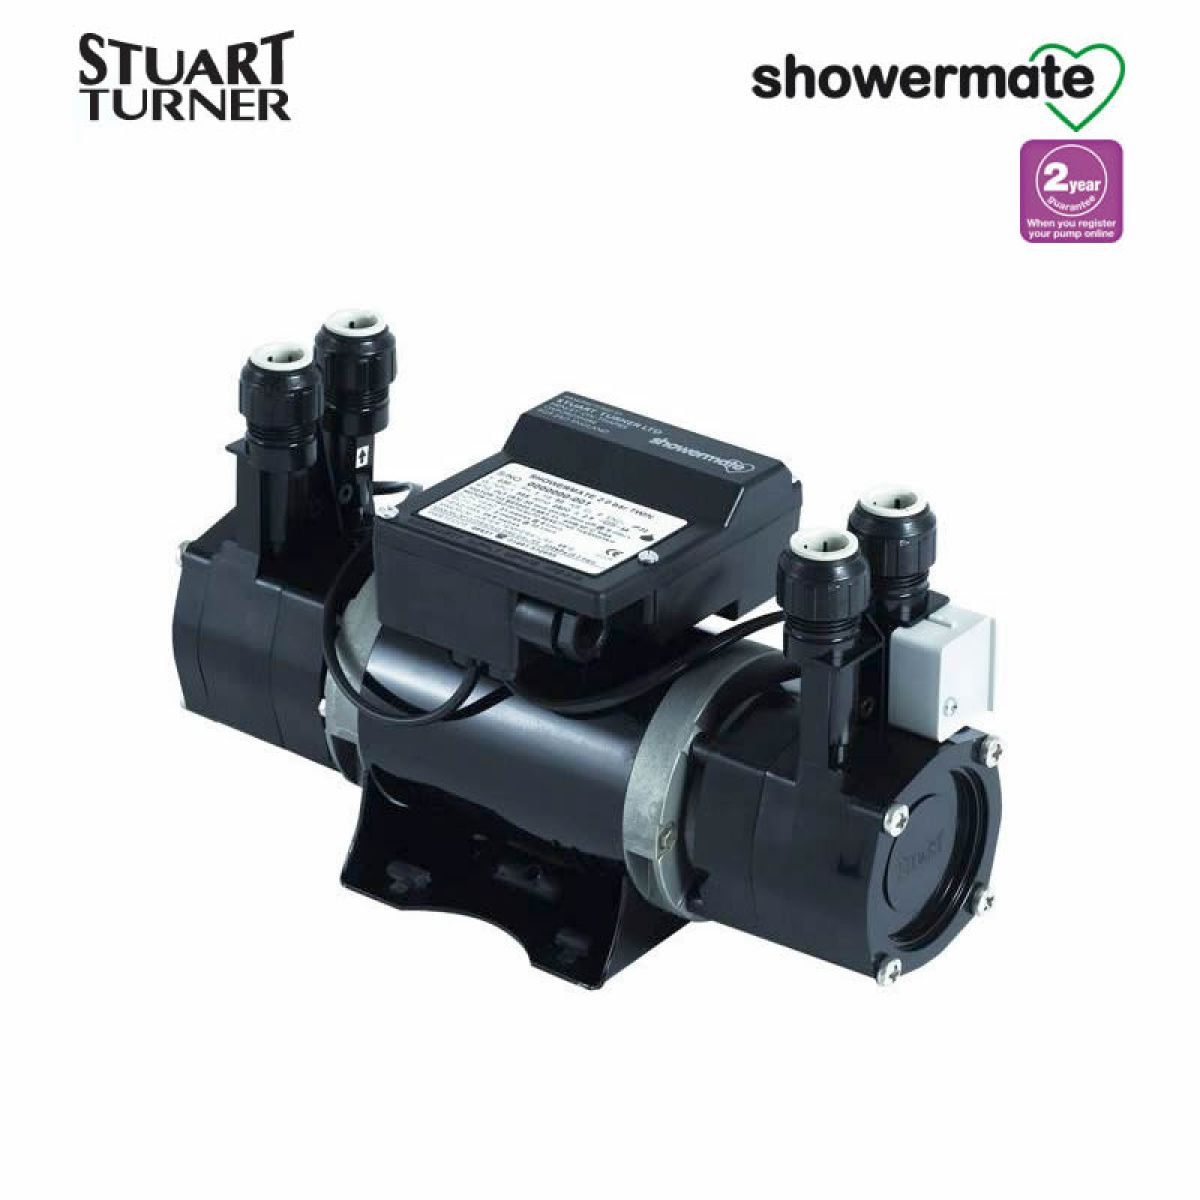 The Stuart Turner Showermate 1 8 Bar Standard Twin Boost